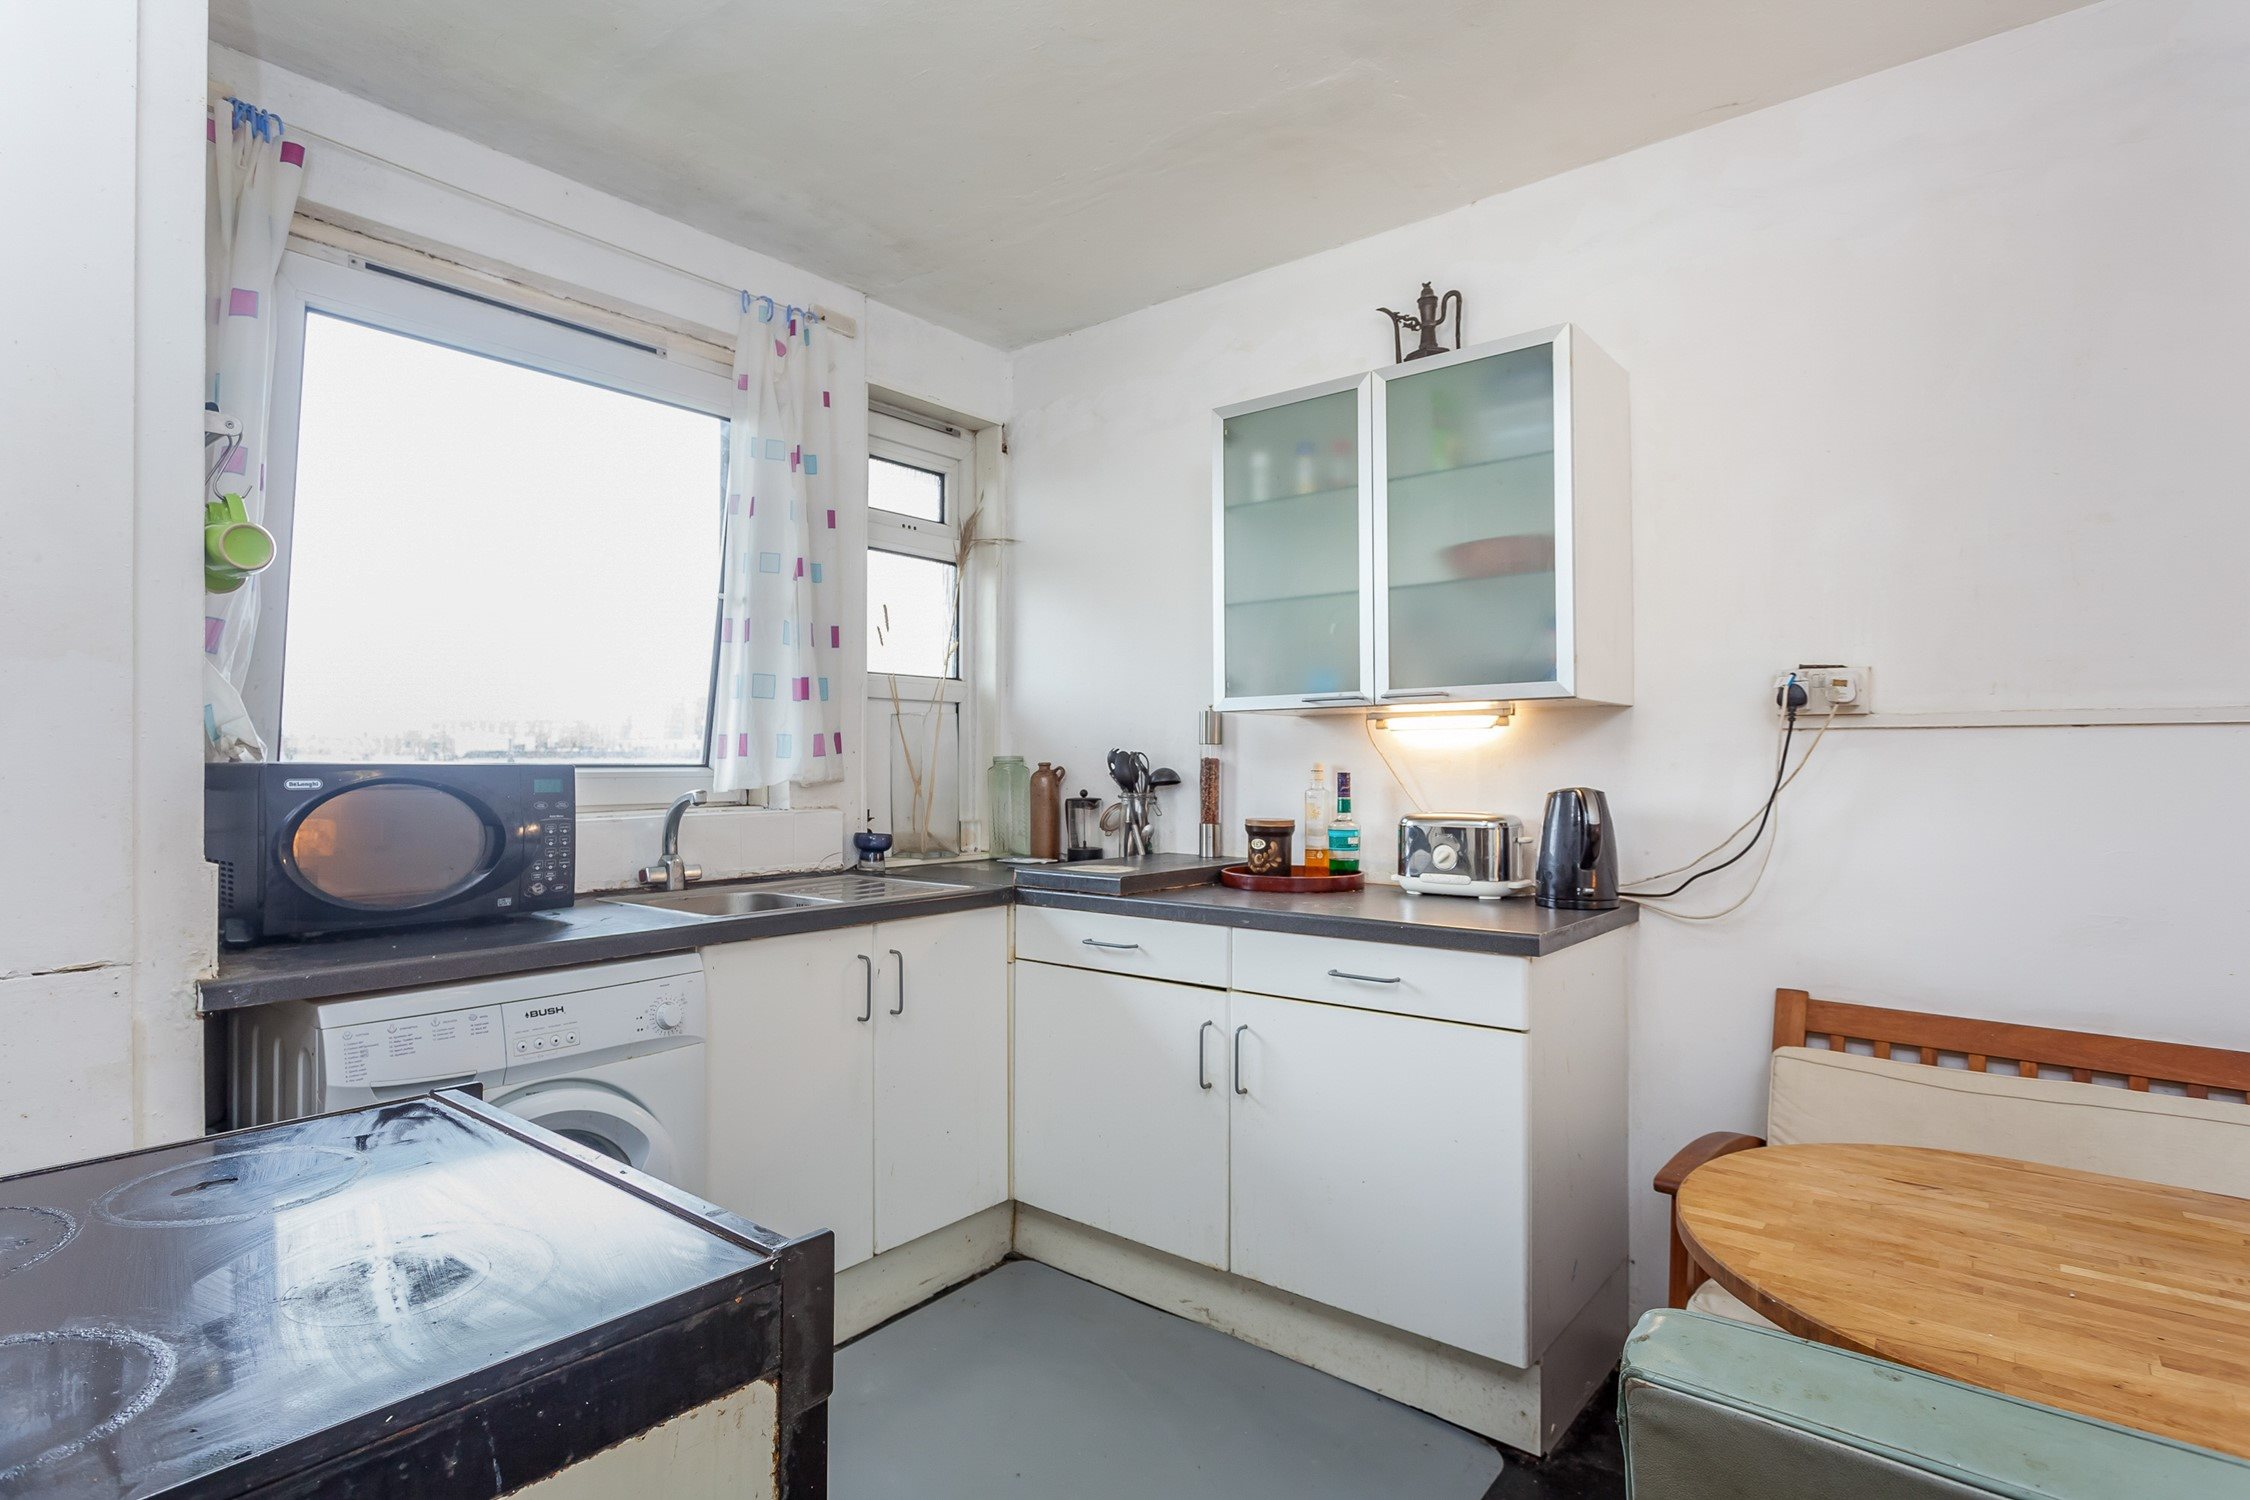 Portico - 2 Bedroom Flat for sale in Camden: Bayham Street, NW1 ...